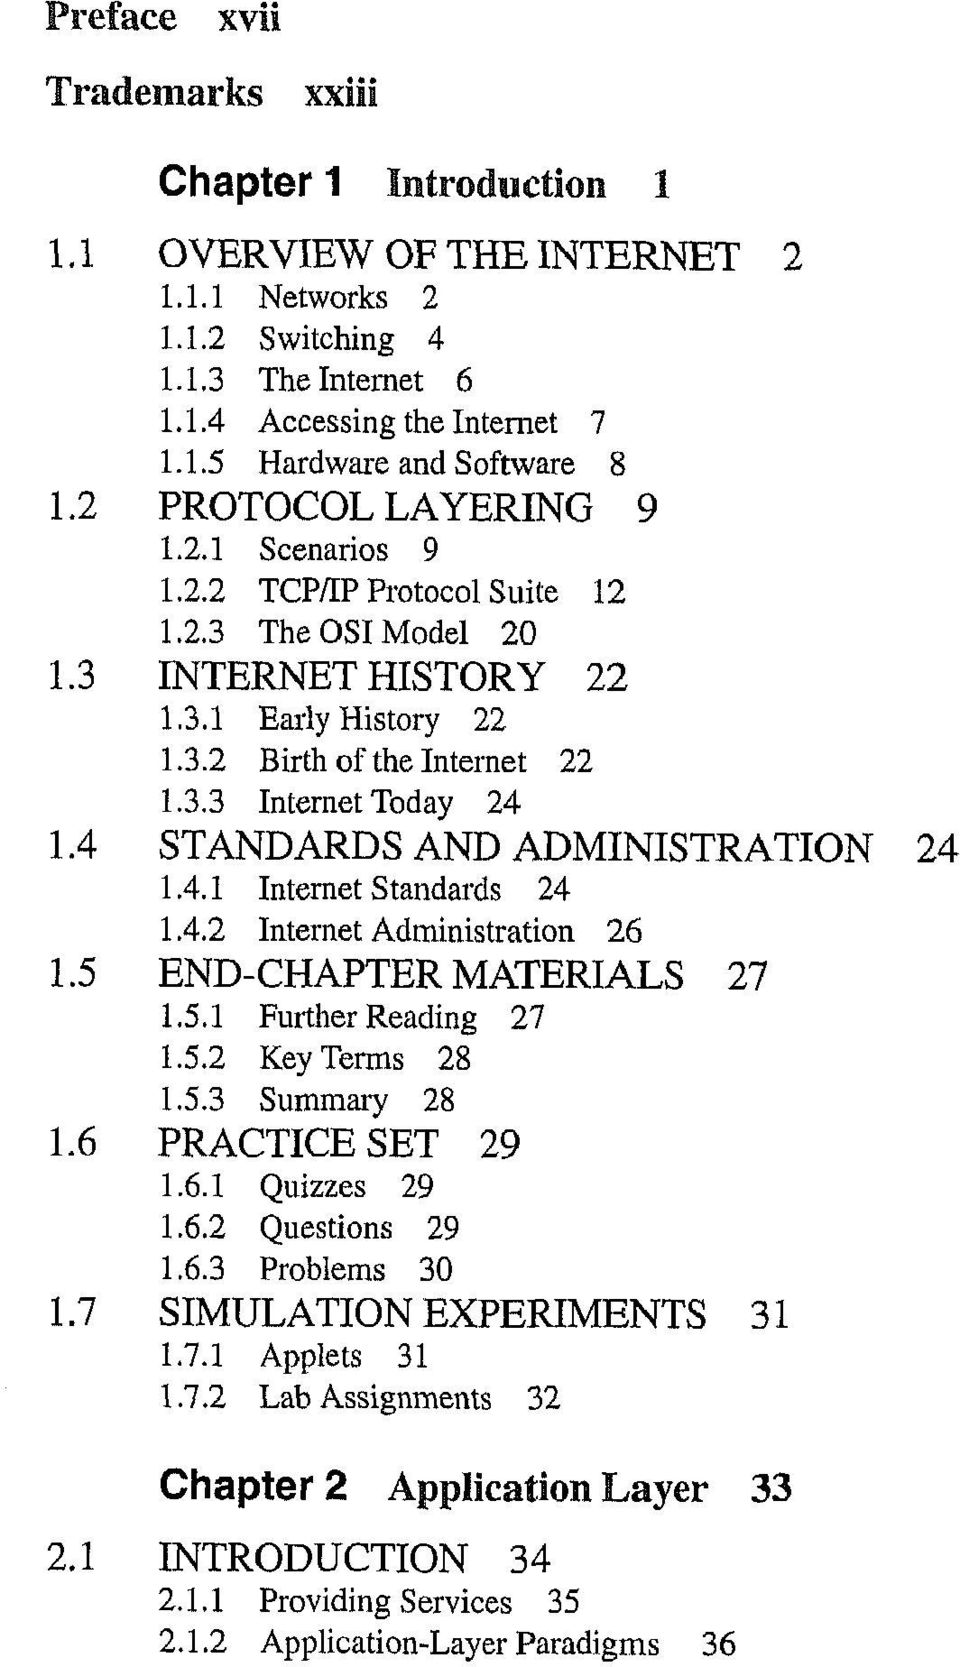 4 STANDARDS AND ADMINISTRATION 1.4.1 Internet Standards 24 1.4.2 Internet Administration 26 1.5 END-CHAPTER MATERIALS 27 1.5.1 Further Reading 27 1.5.2 Key Terms 28 1.5.3 Summary 28 1.